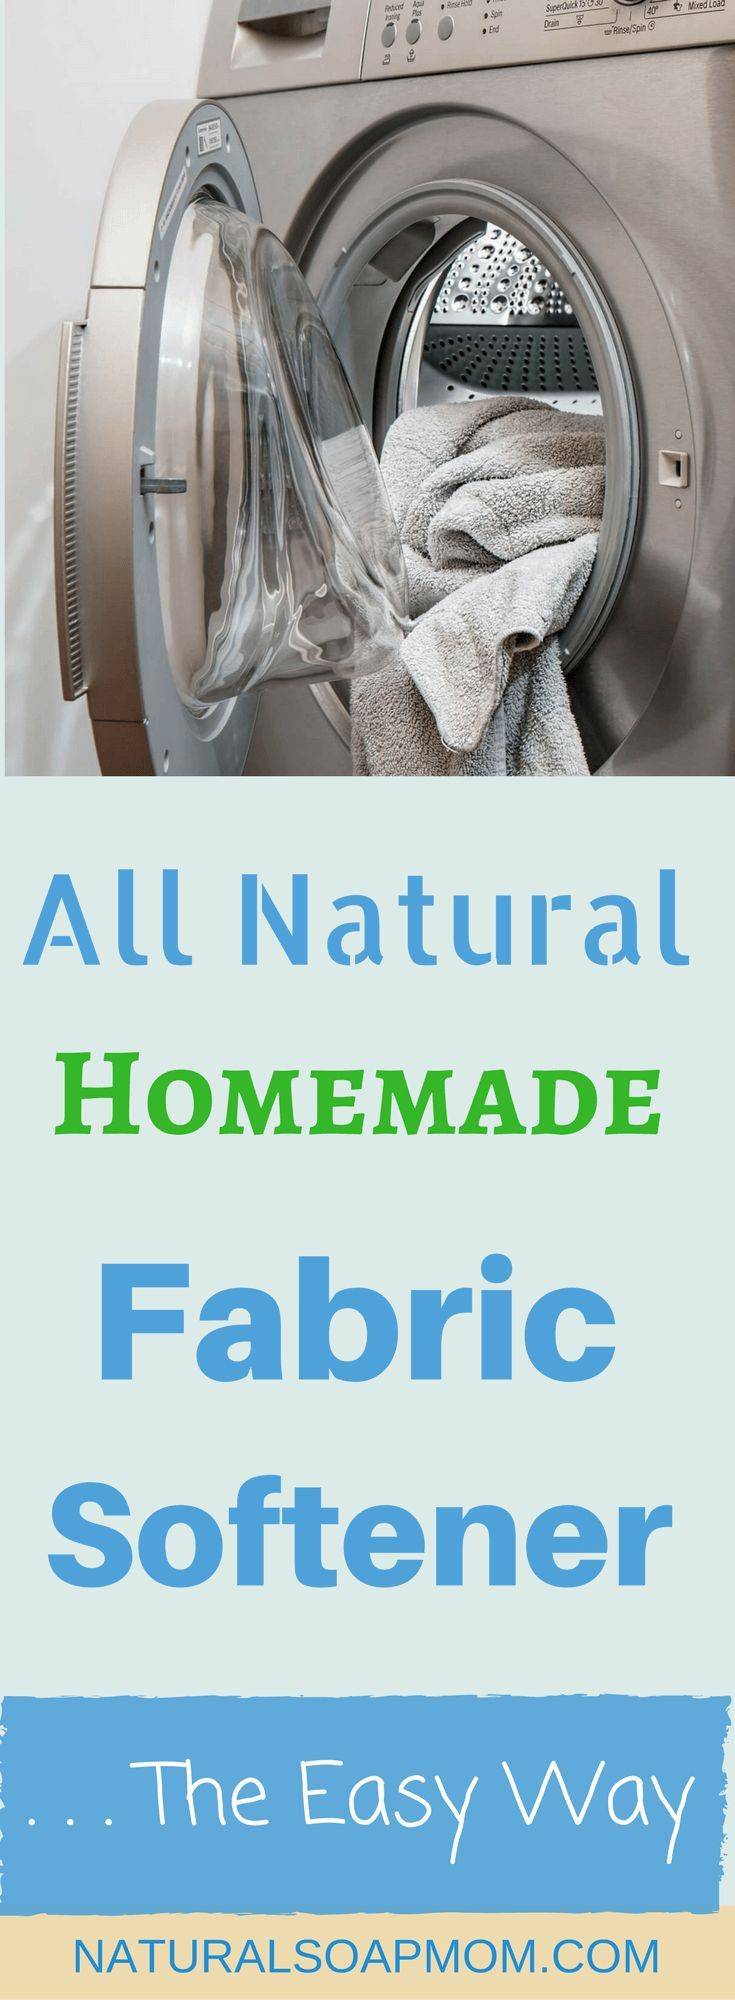 Why does homemade fabric softener seem so complicated? I found too much information and ideas –DIY dryer sheets, DIY Fabric softener recipes, vinegar, Essential Oils, Epson salts. It makes your head spin! Instead do what works! Get All Natural, Homemade Fabric Softener – The EASY Way! Find out how easy the switch is – you can be making your own homemade fabric softener tomorrow – no recipe required. Just a handy shopping list! @naturalsoapmom.com